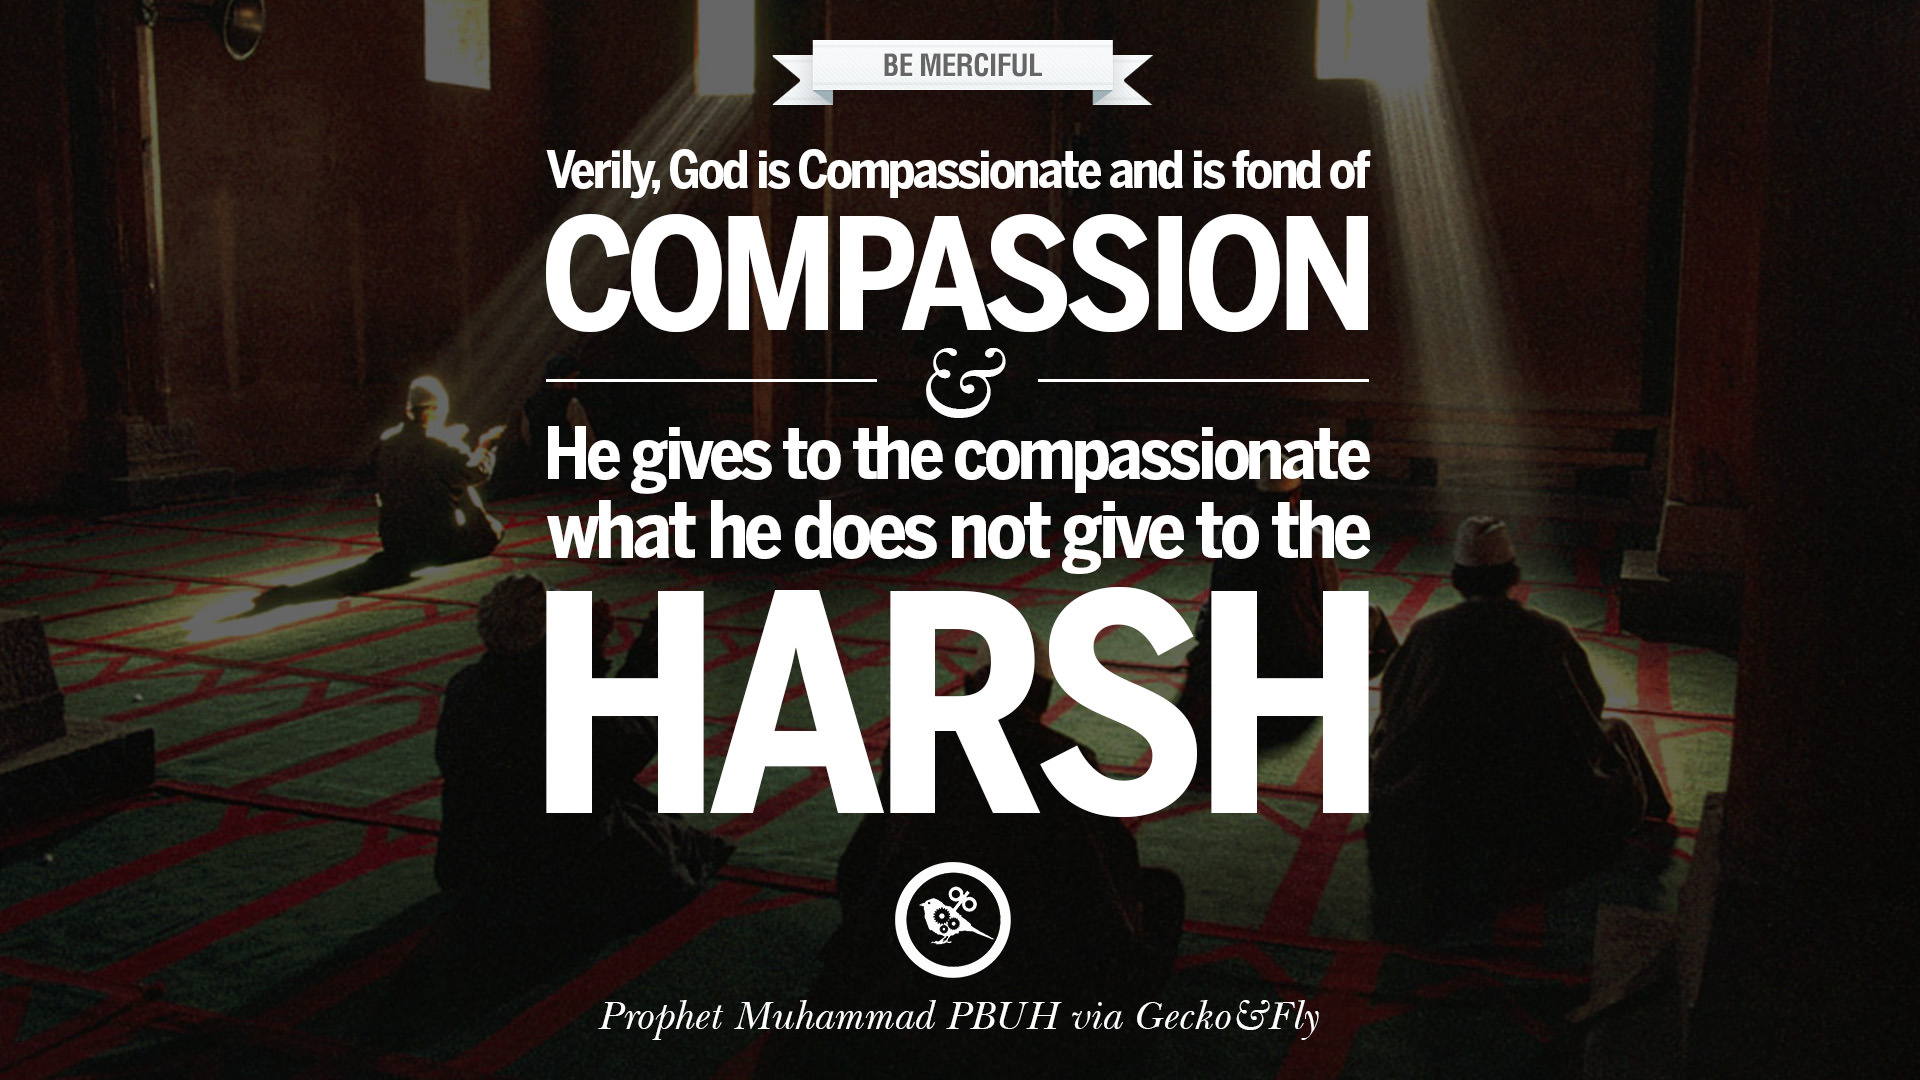 Verily god is compassionate and is fond of compassion and he gives to the compassionate what he does not give to the harsh